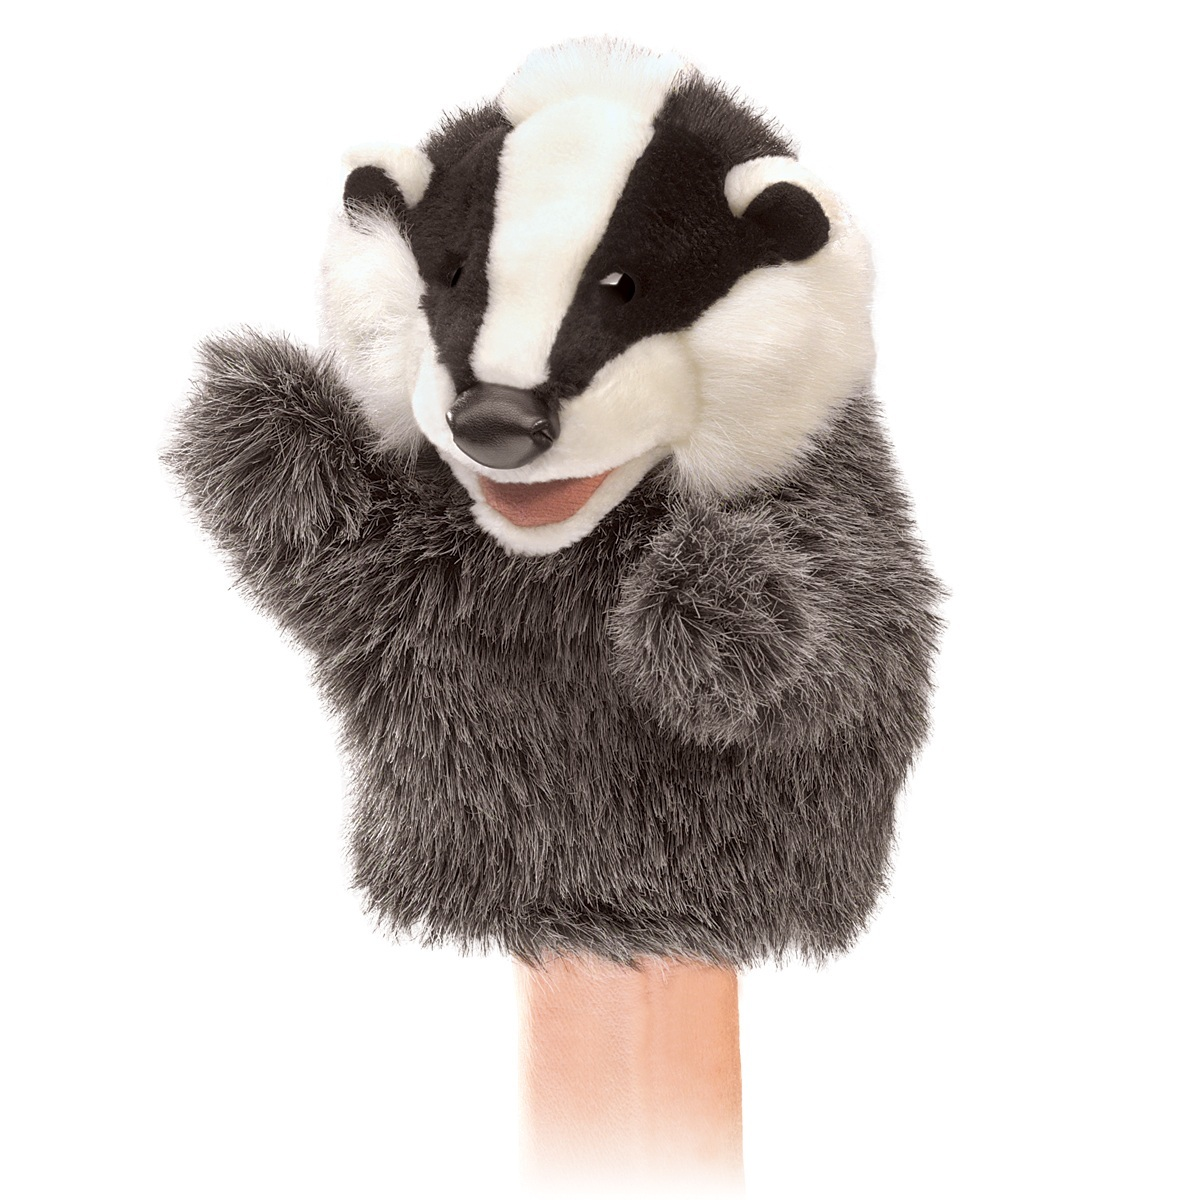 Folkmanis Hand Puppet - Little Badger image